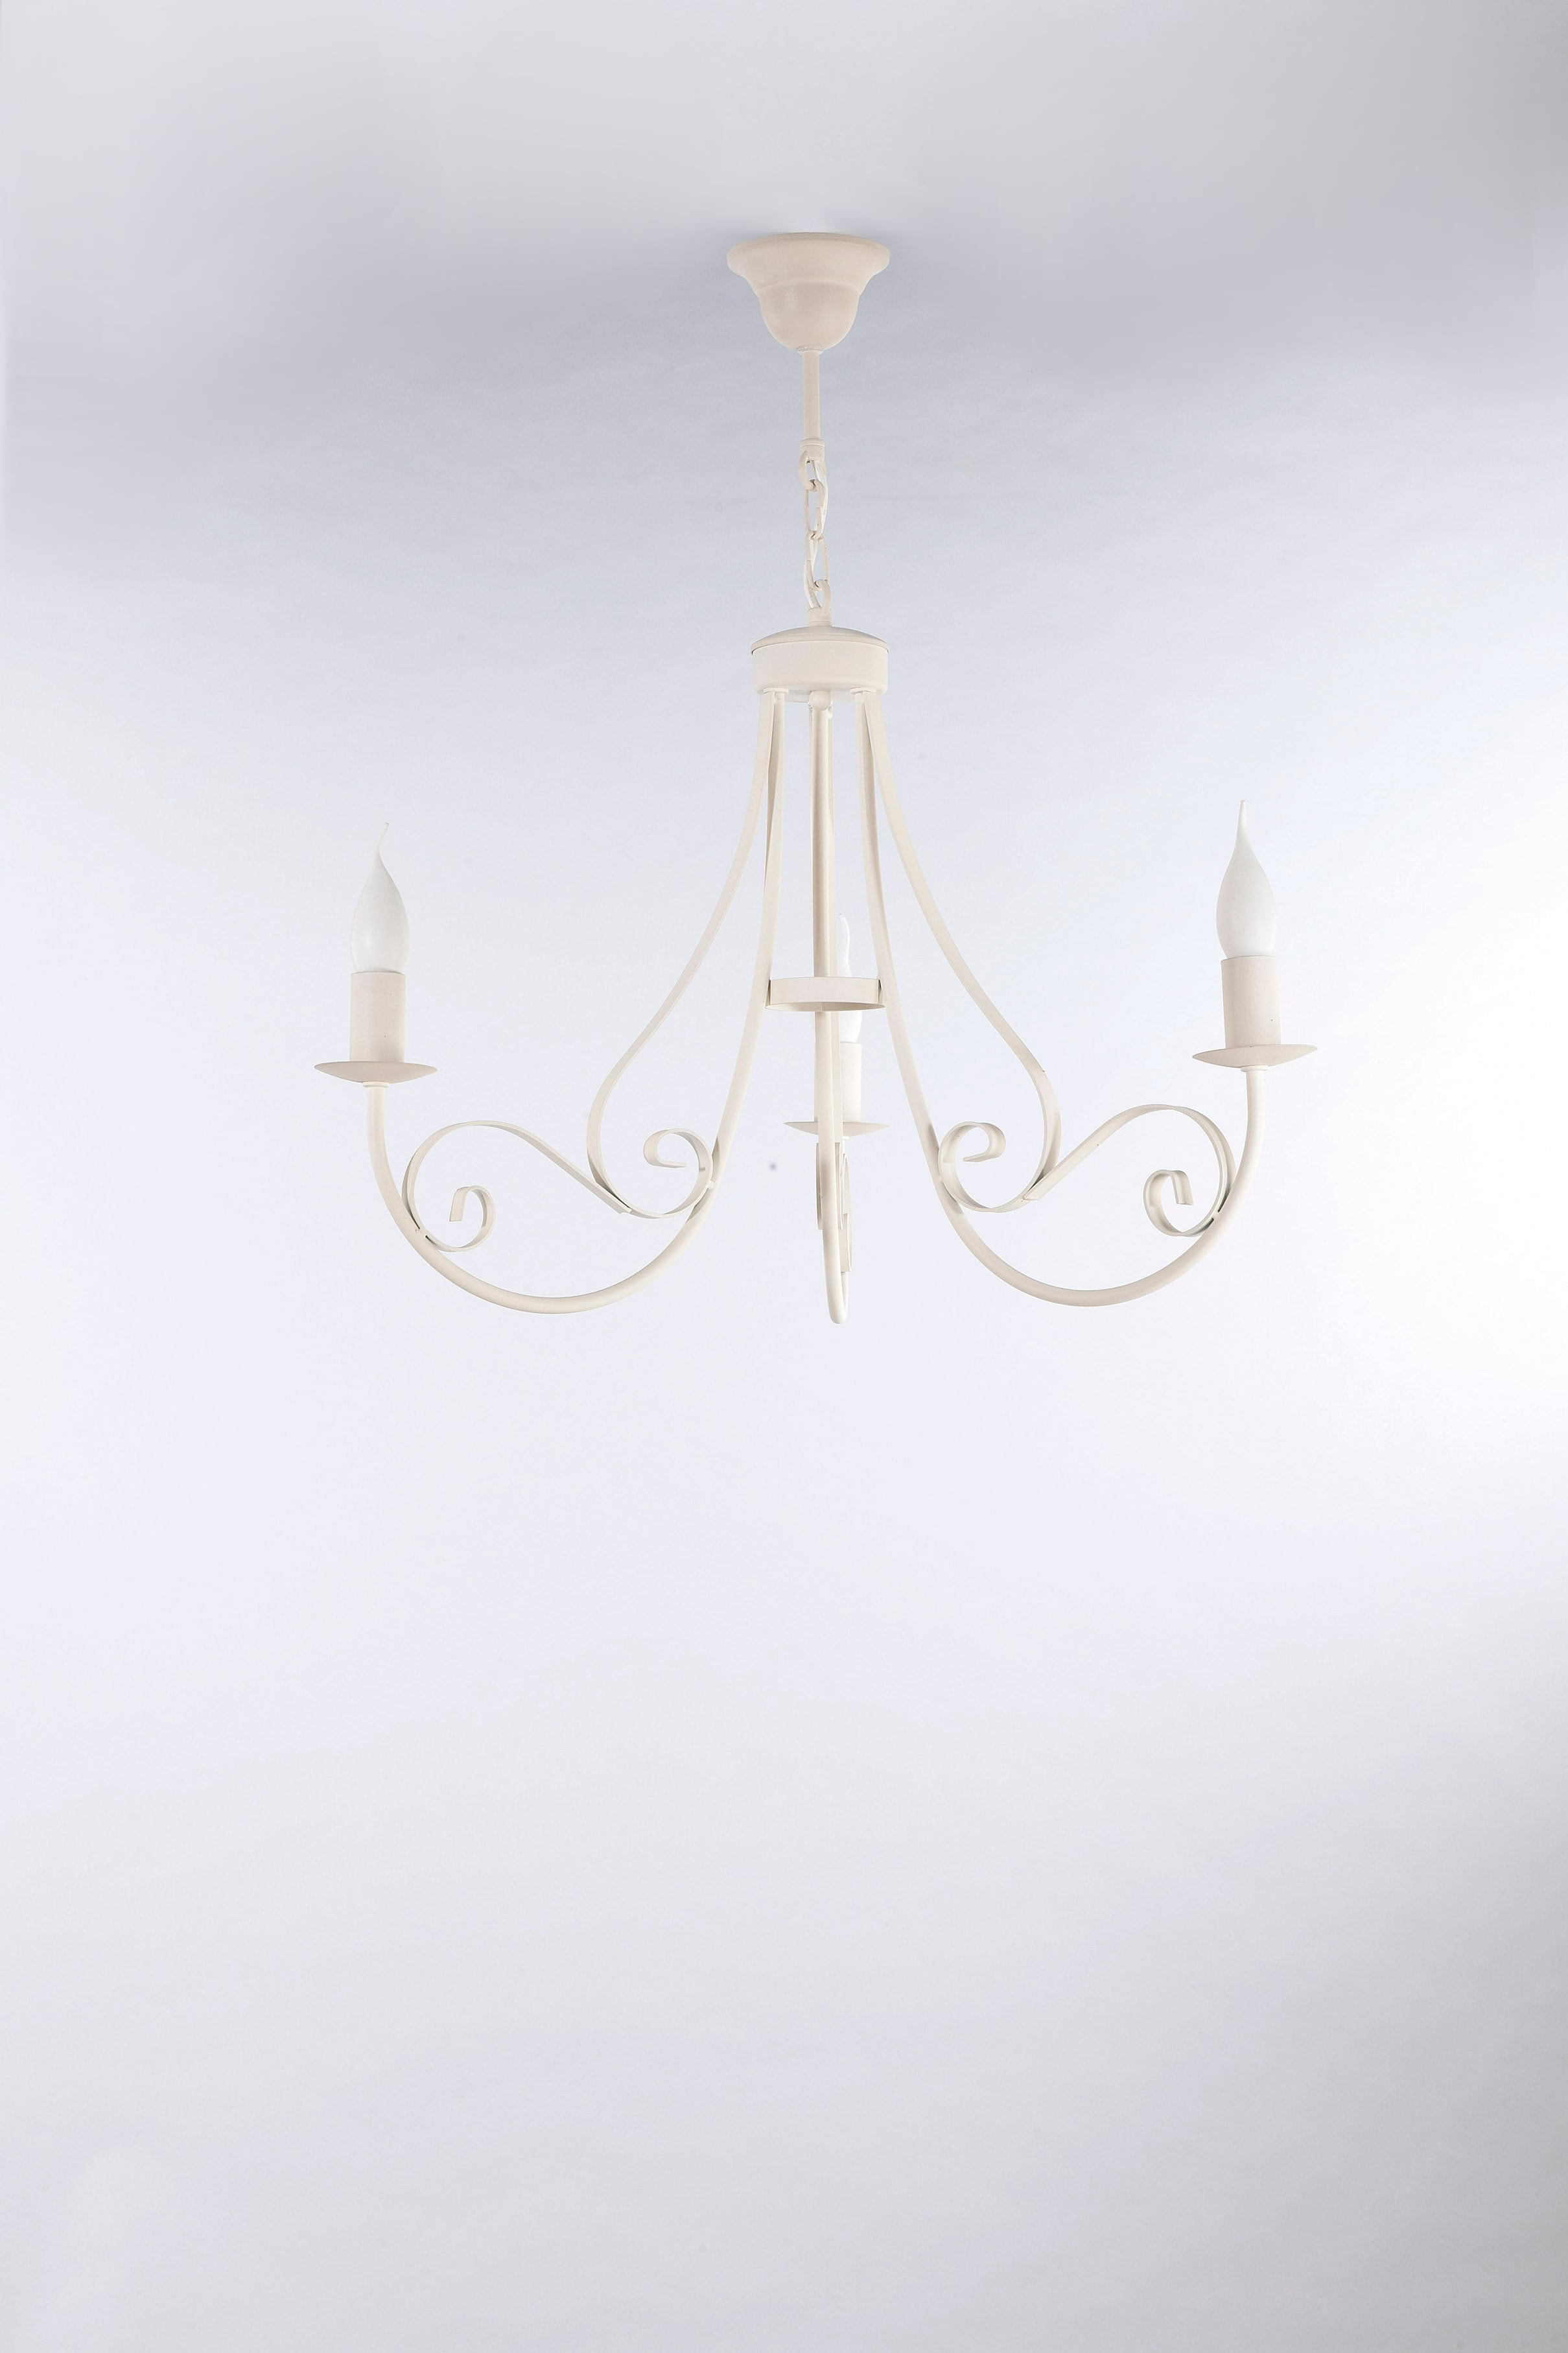 Hanging Lamp Mizar Classic Cream 3 No. 3382